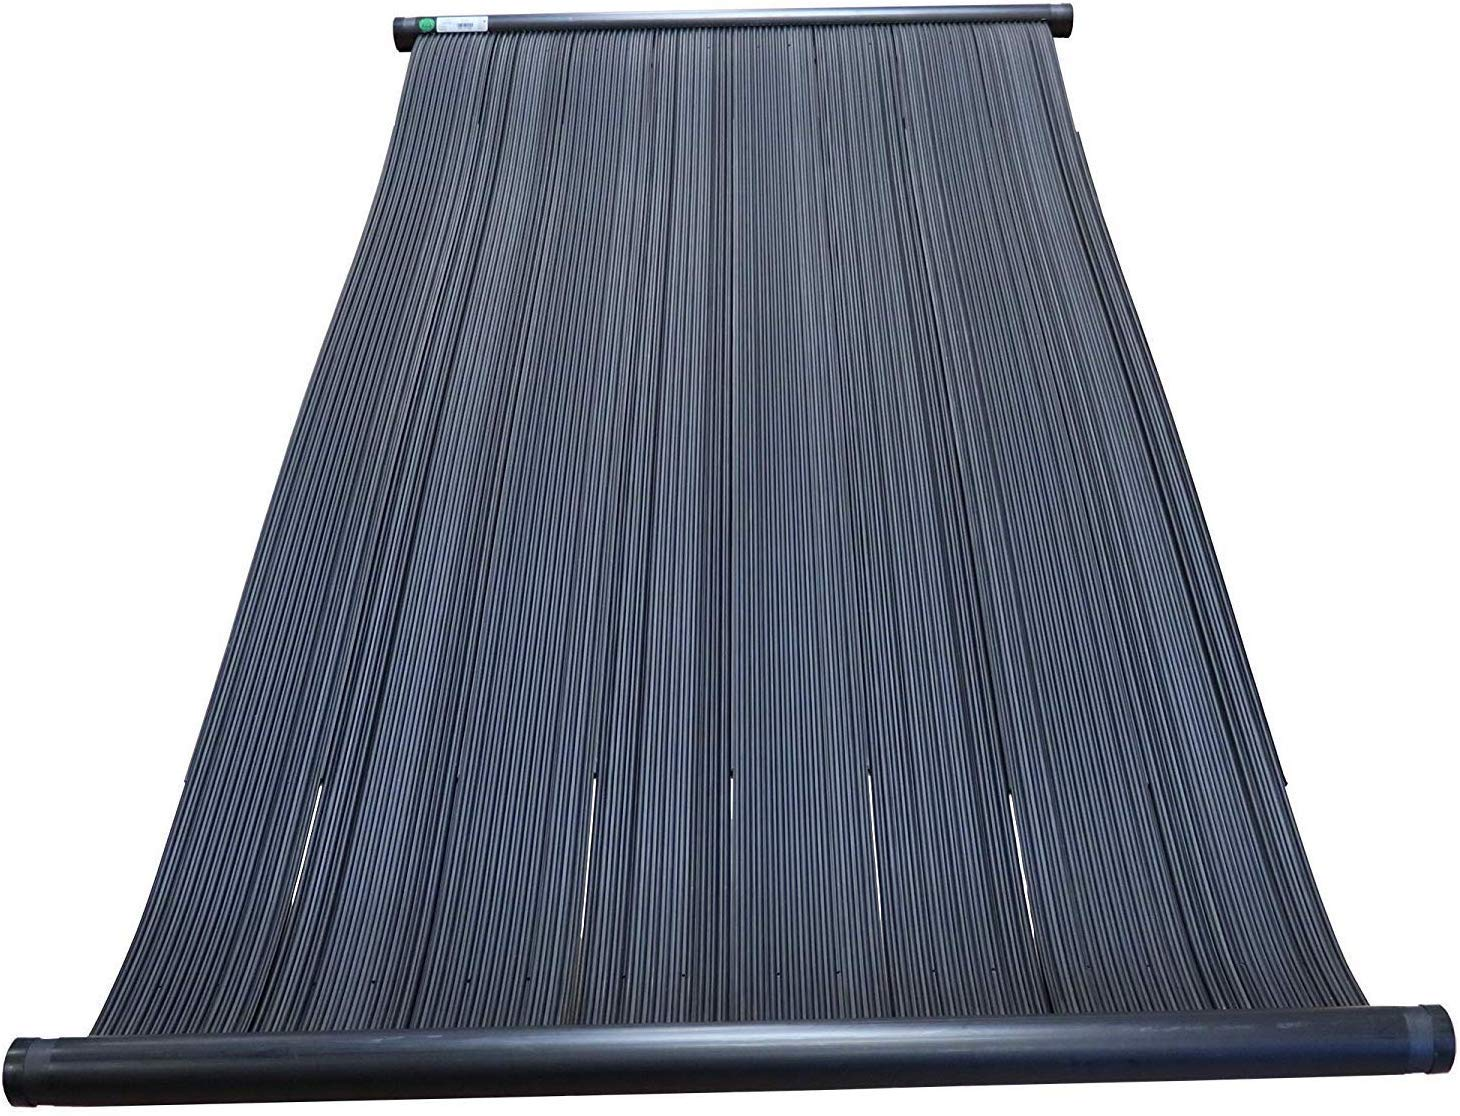 SolarPoolSupply Solar Pool Heater Replacement